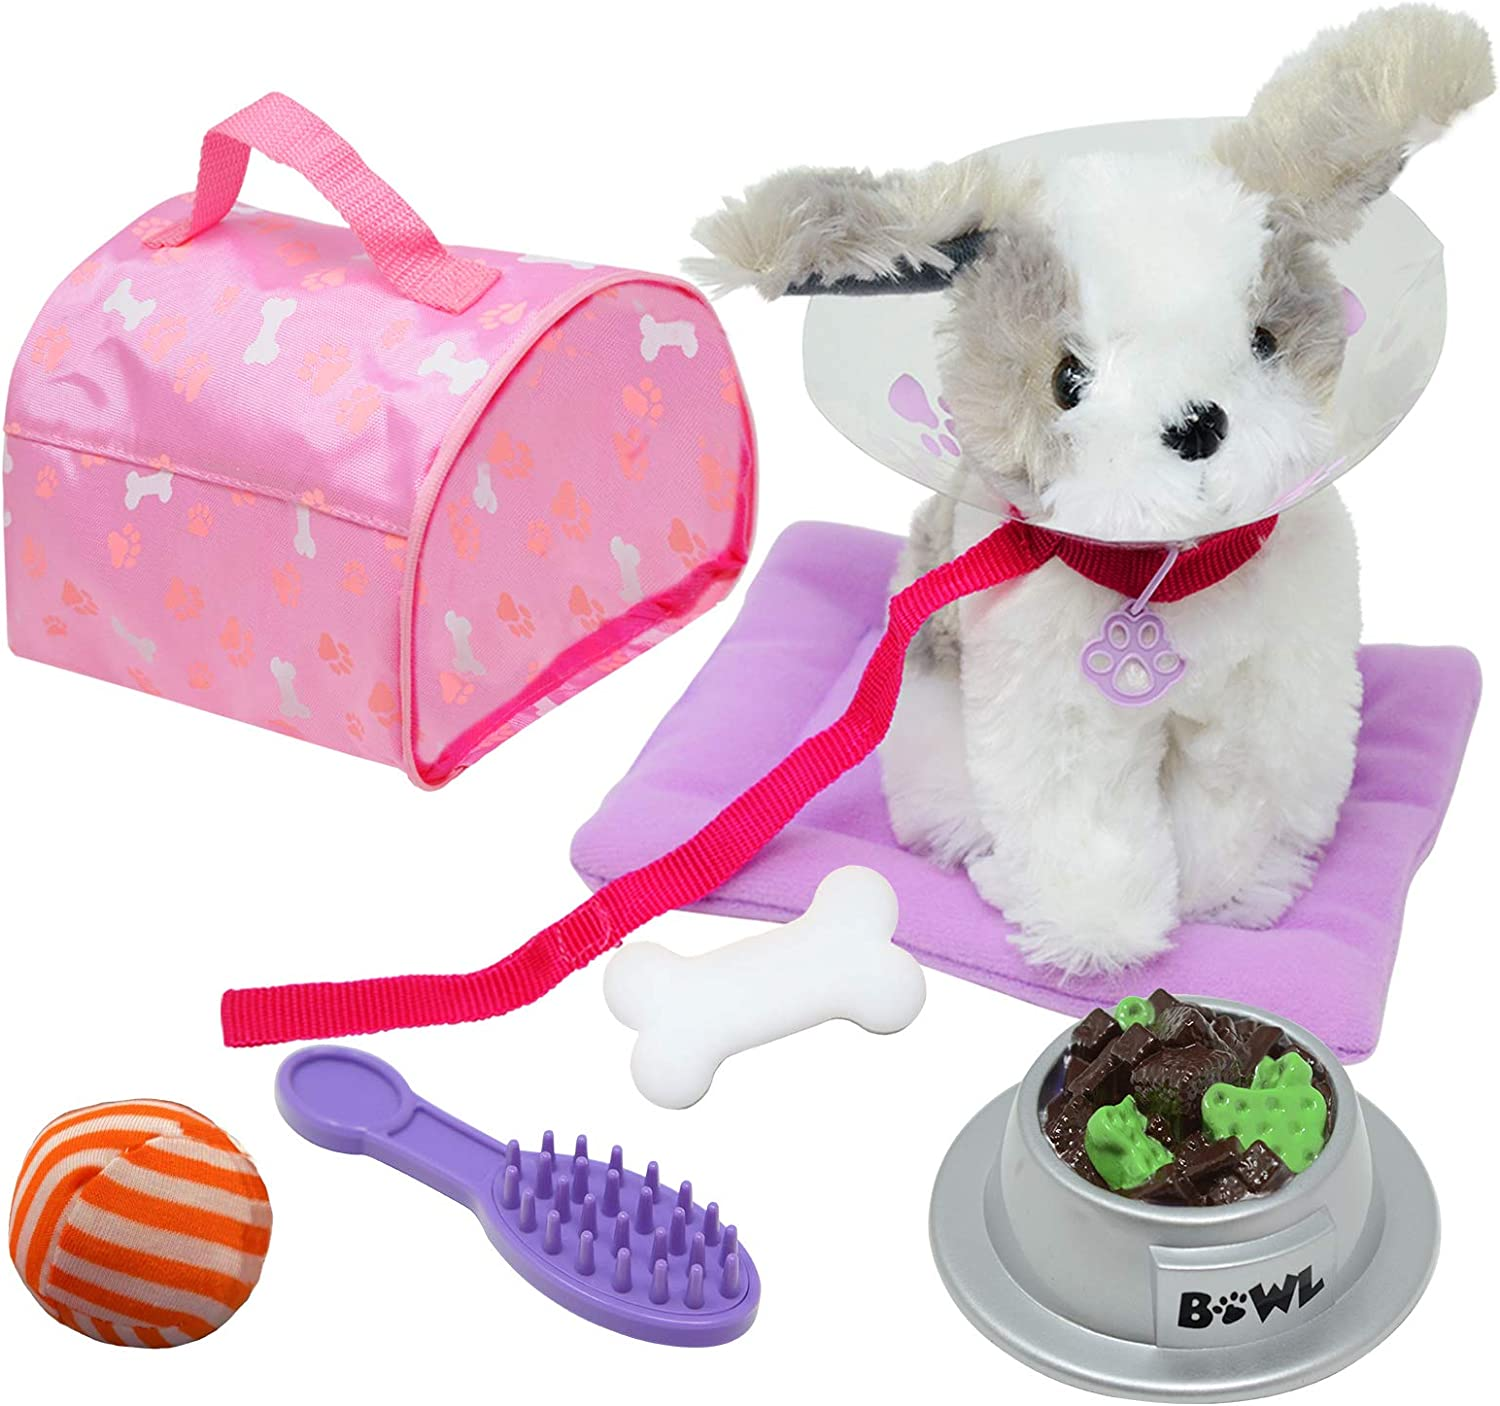 NEW YORK DOLL COLLECTION Plush Puppy Dog Accessories Play Set for 18 inch Dolls - Pet Accessory Set fits American Girl Dolls